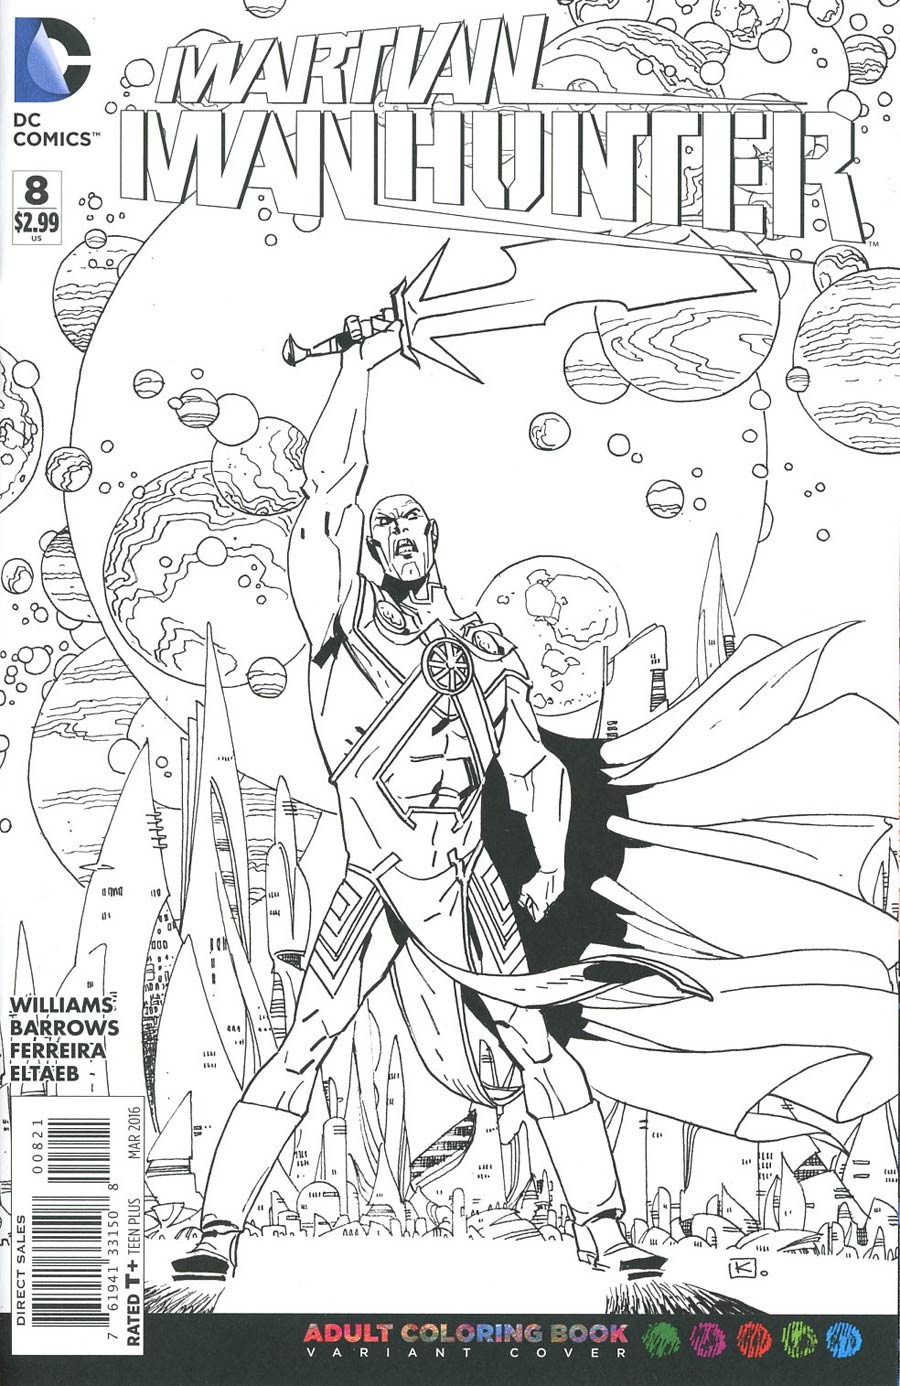 Martian Manhunter Vol 4 #8 Cover B Variant Andy Kuhn Adult Coloring Book Cover